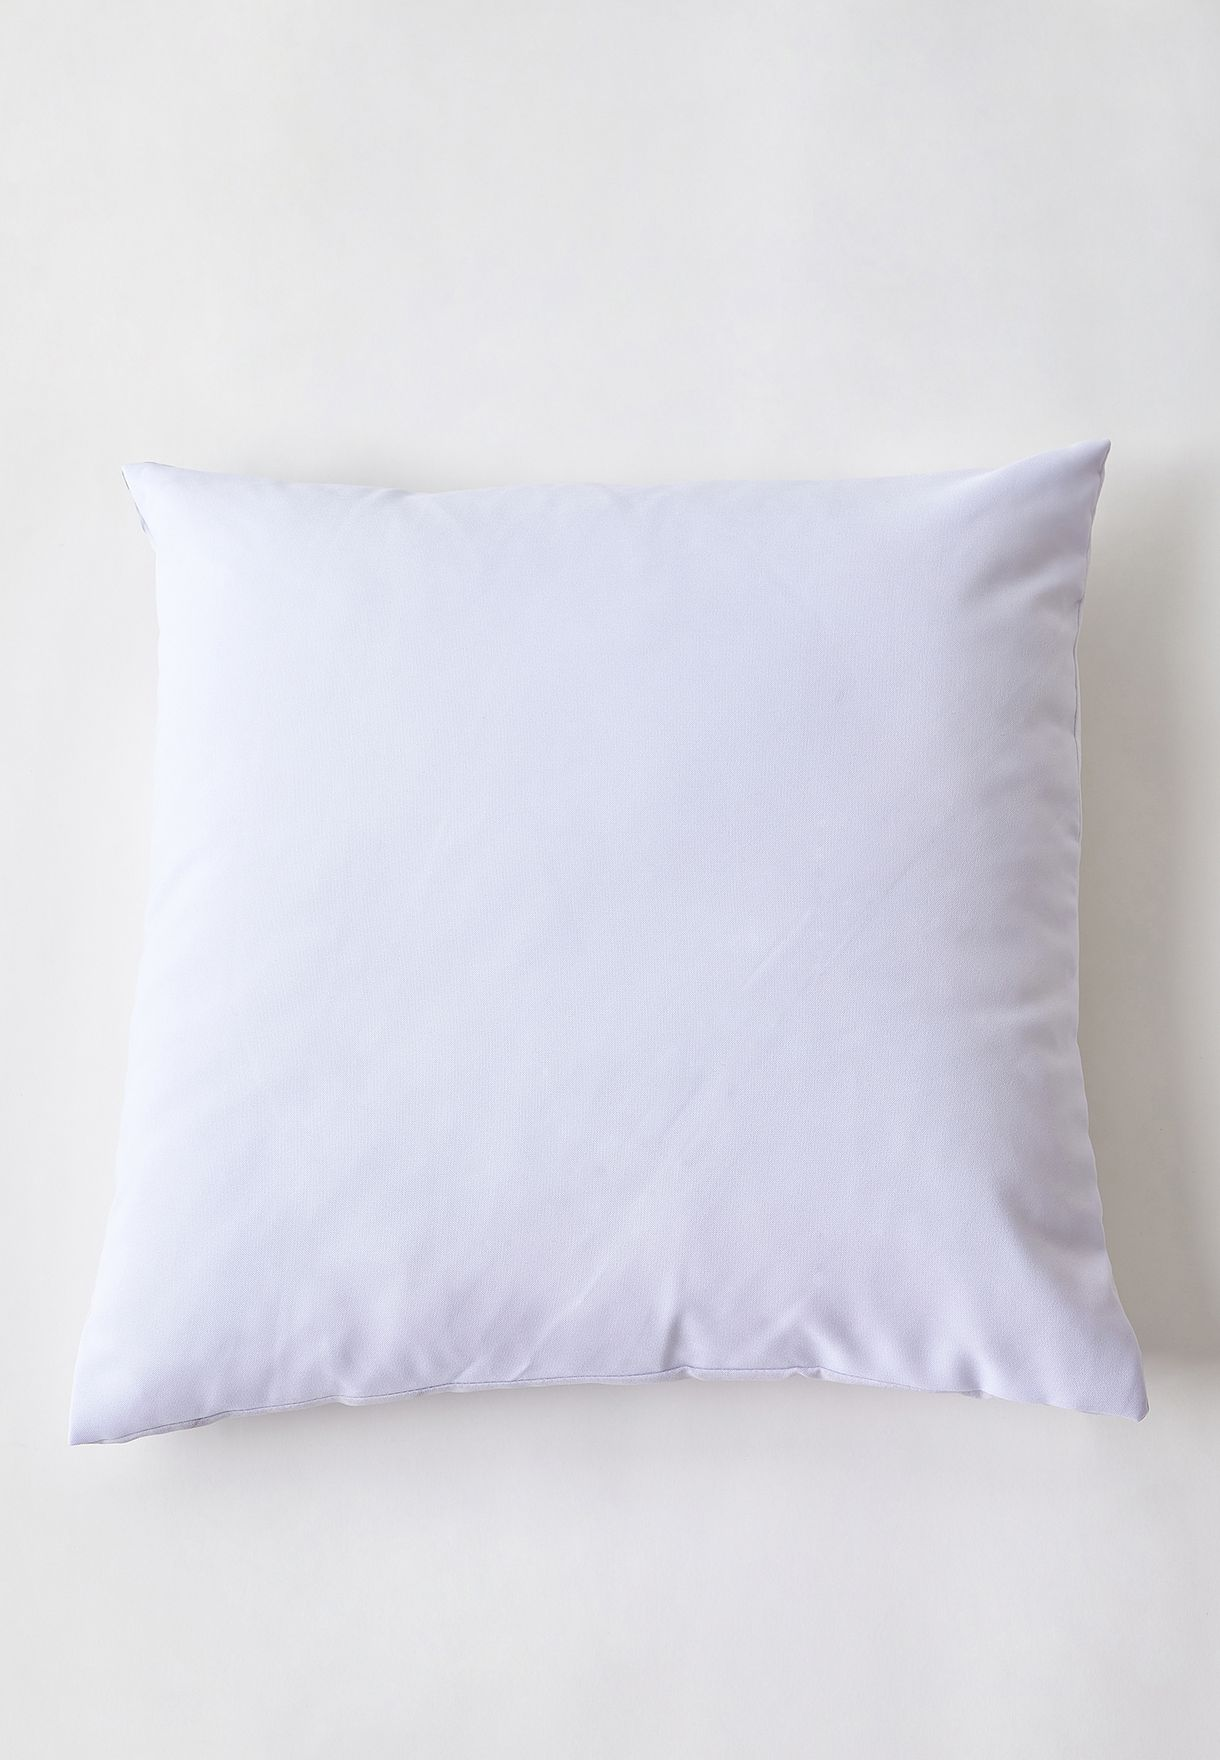 Marble Cushion With Insert45x45cm